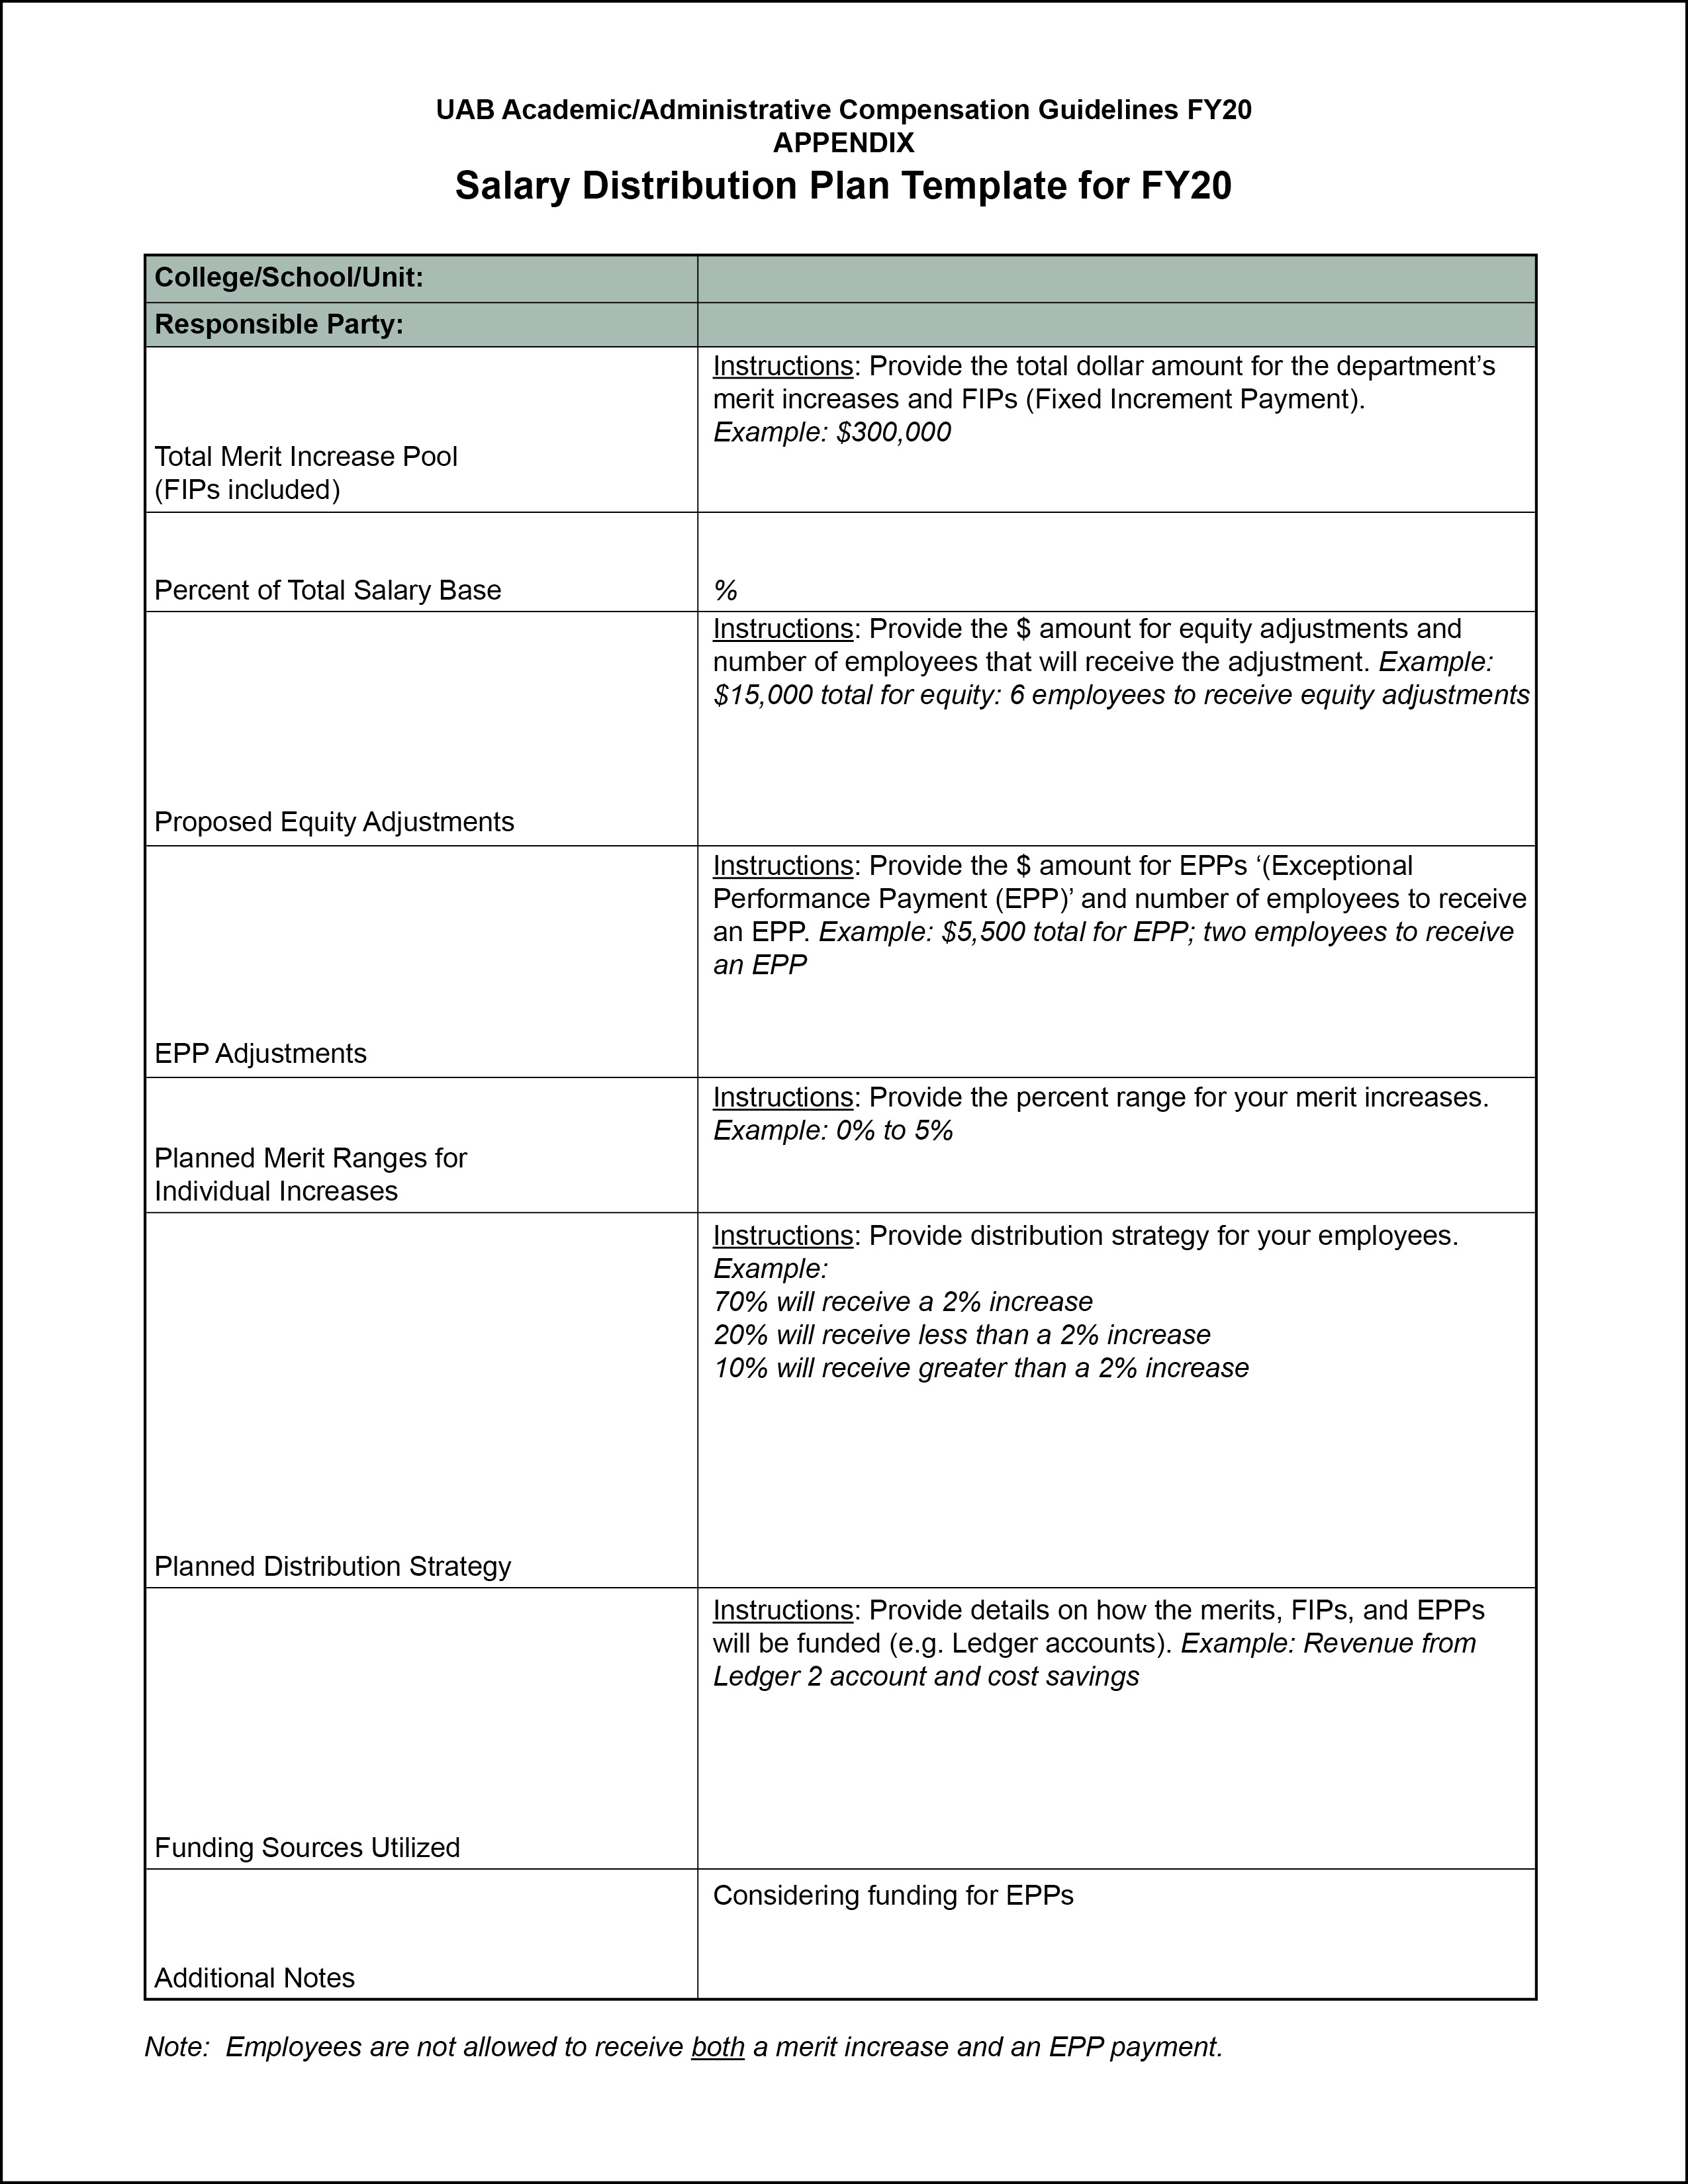 UAB - Human Resources - Compensation Guidelines